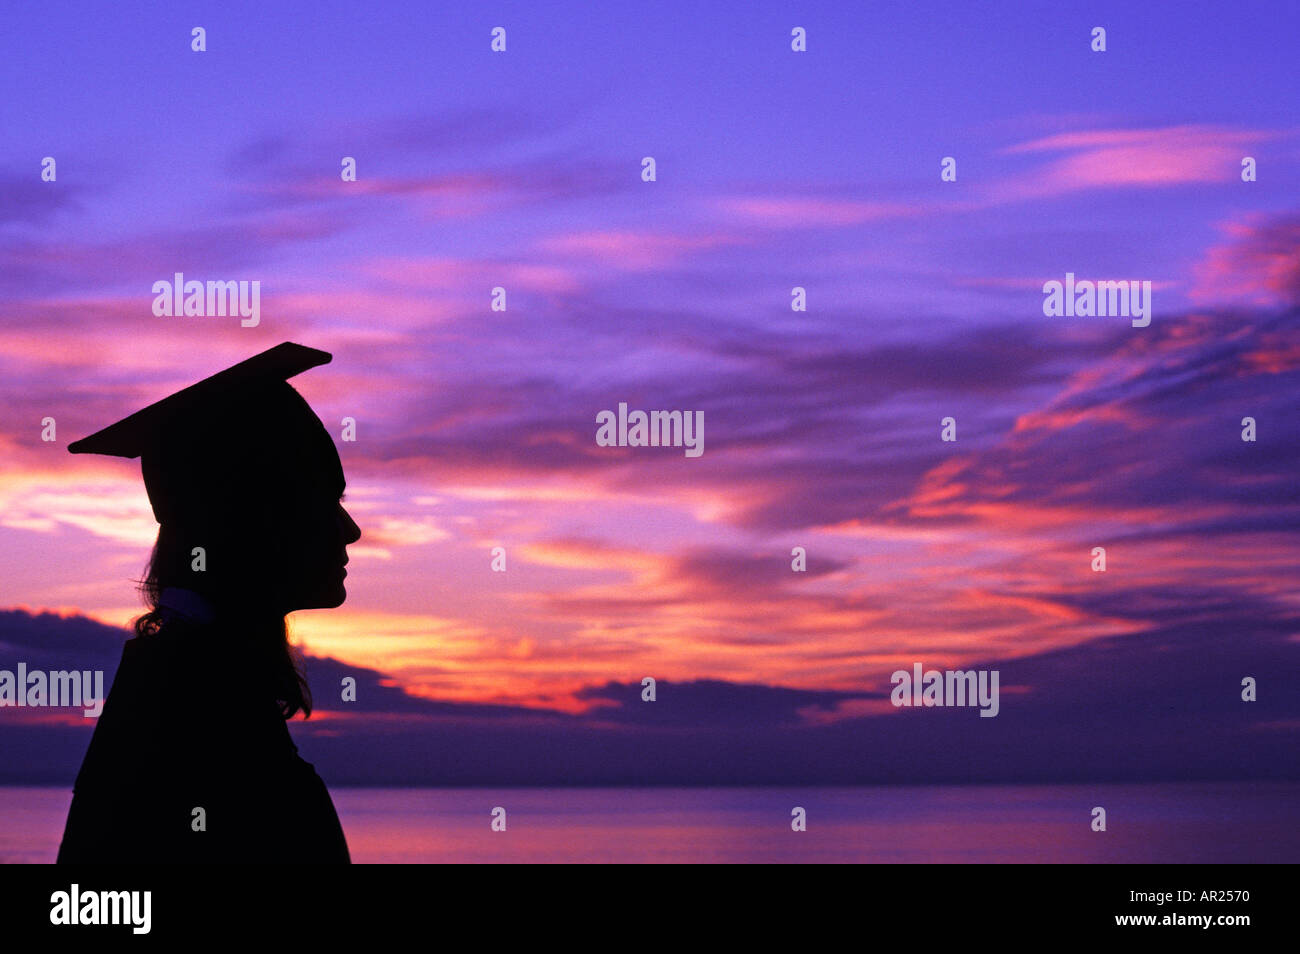 Female graduate in cap and gown silhouetted against colorful sky and sea in background 1902 015 11 Stuart Dee - Stock Image